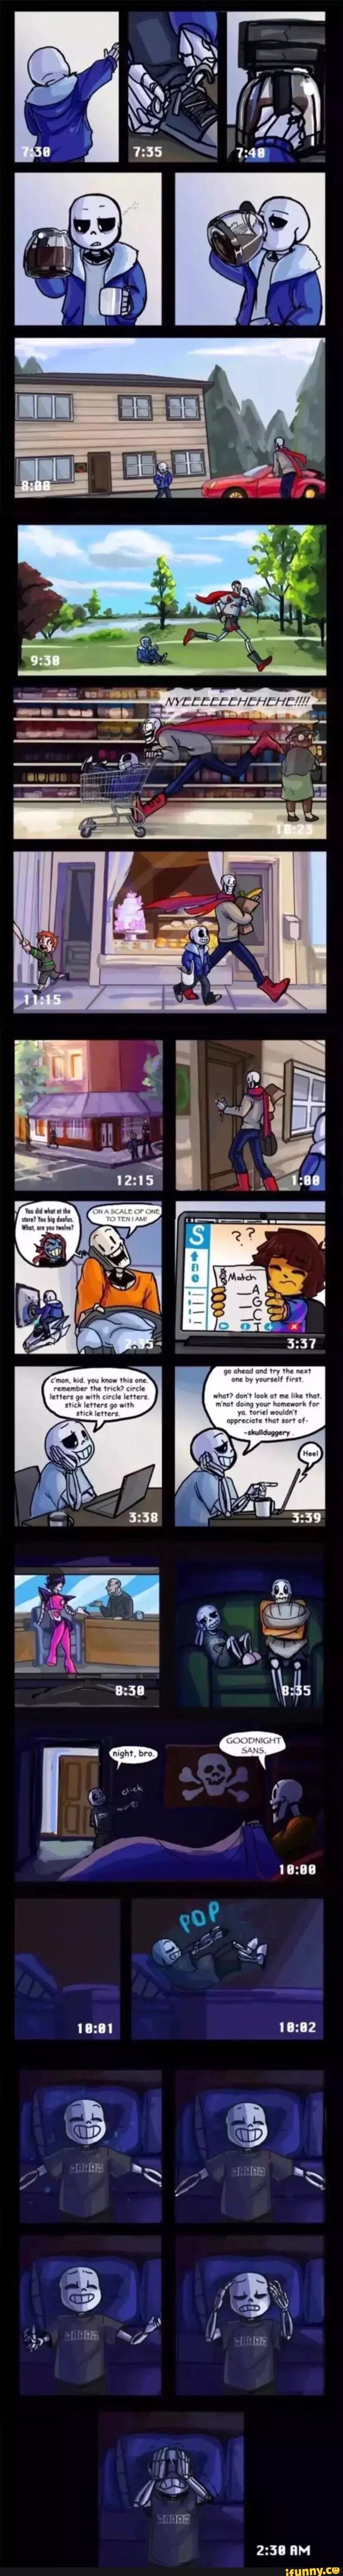 """Sans, Papyrus, Toriel, Frisk, Undertale Check out the link Ashia Wortham put, """"Hey guys this is a comic by wilyart called Insomnia"""" here is the link http://wilyart.tumblr.com/tagged/insomnia-comic/chrono         It will explain a lot more, if you were confuse about the ending part of the comic"""